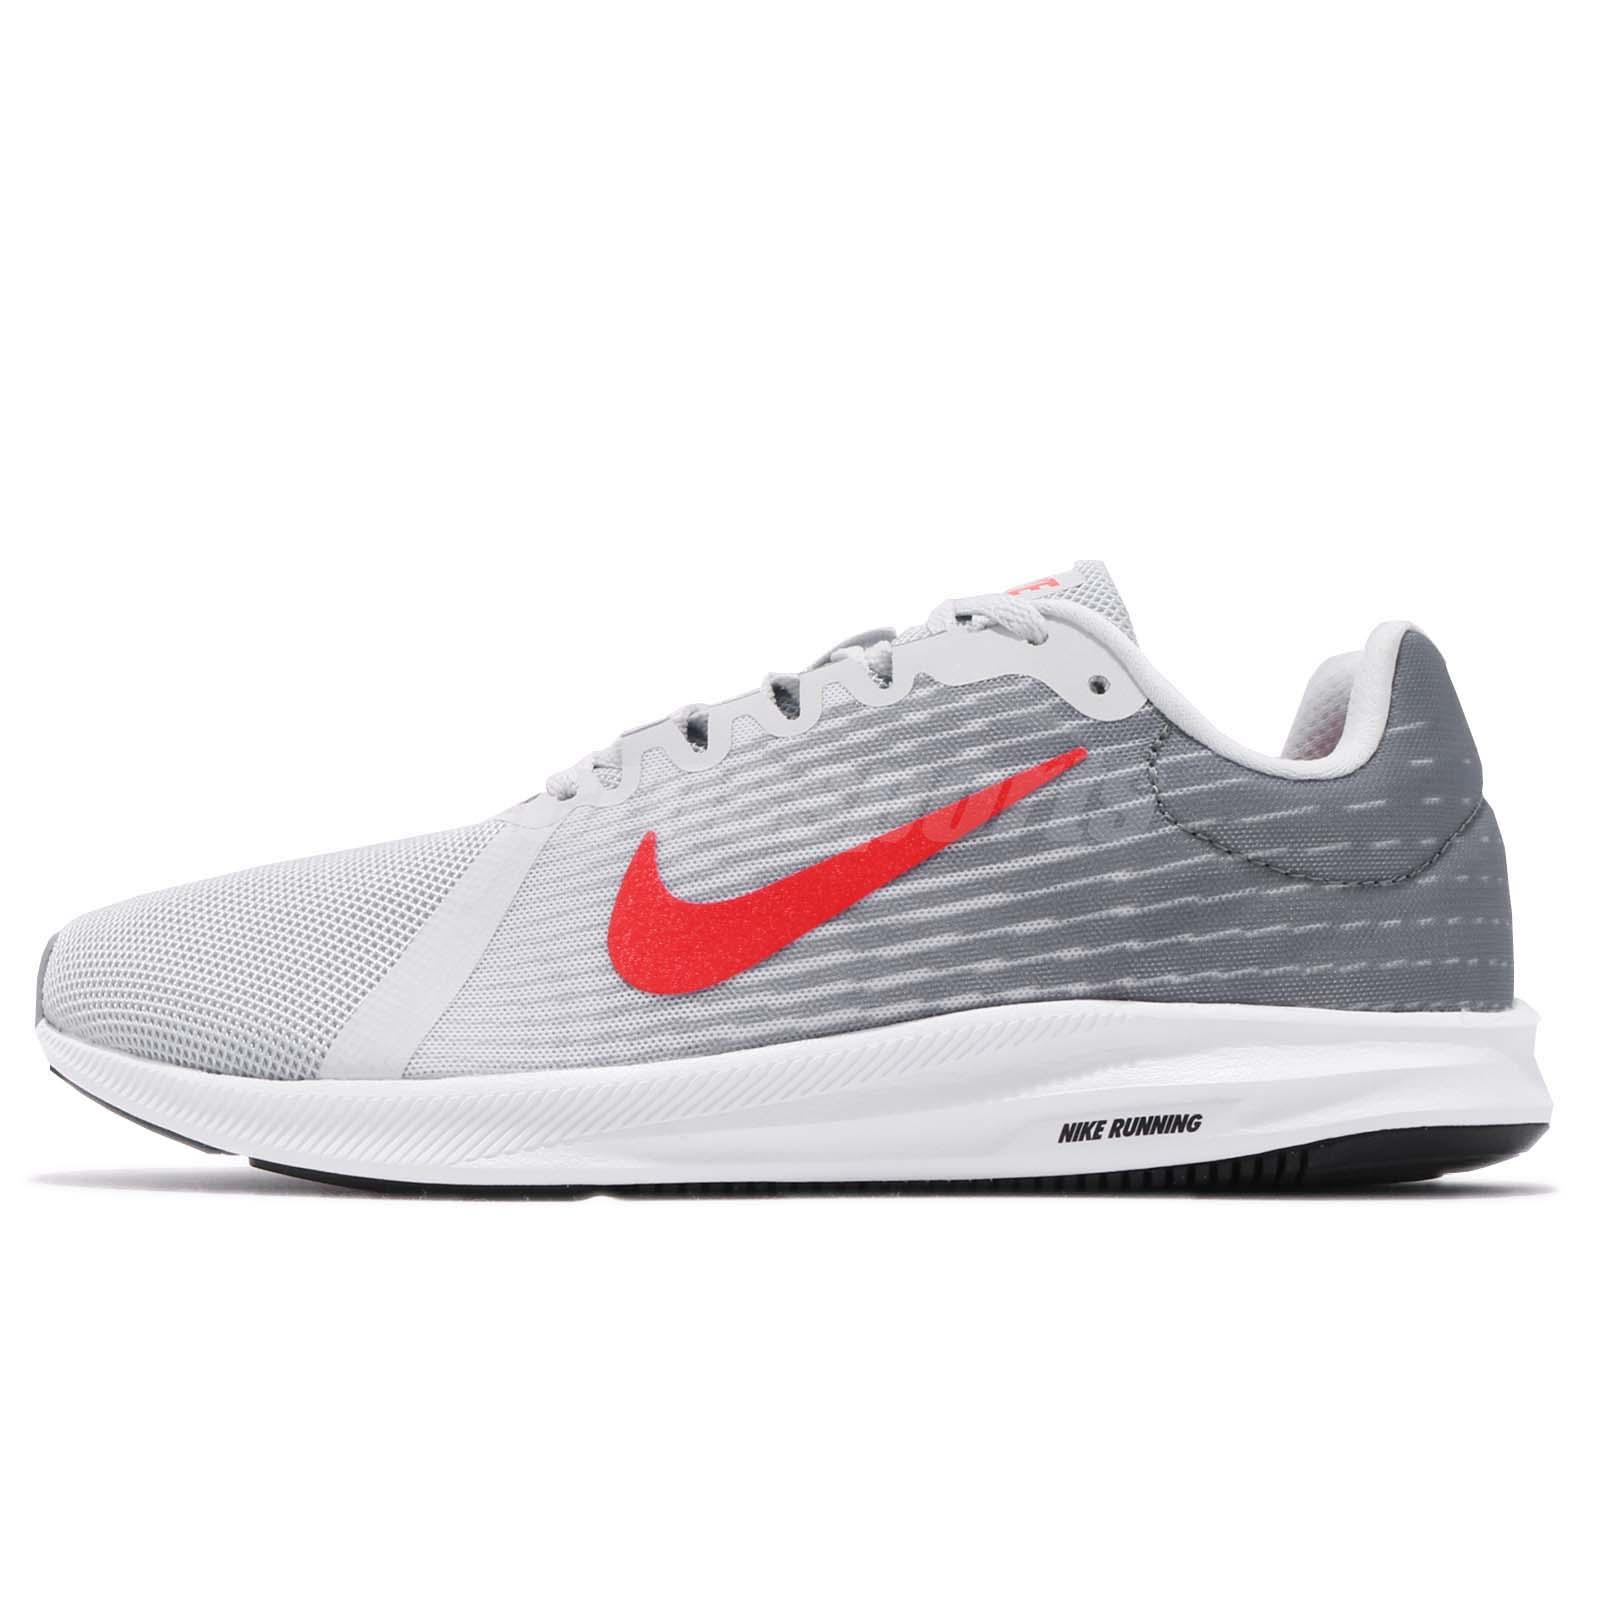 5be738999e537 Nike Downshifter 8 VIII Pure Platinum Red Men Running Shoes Sneakers  908984-012